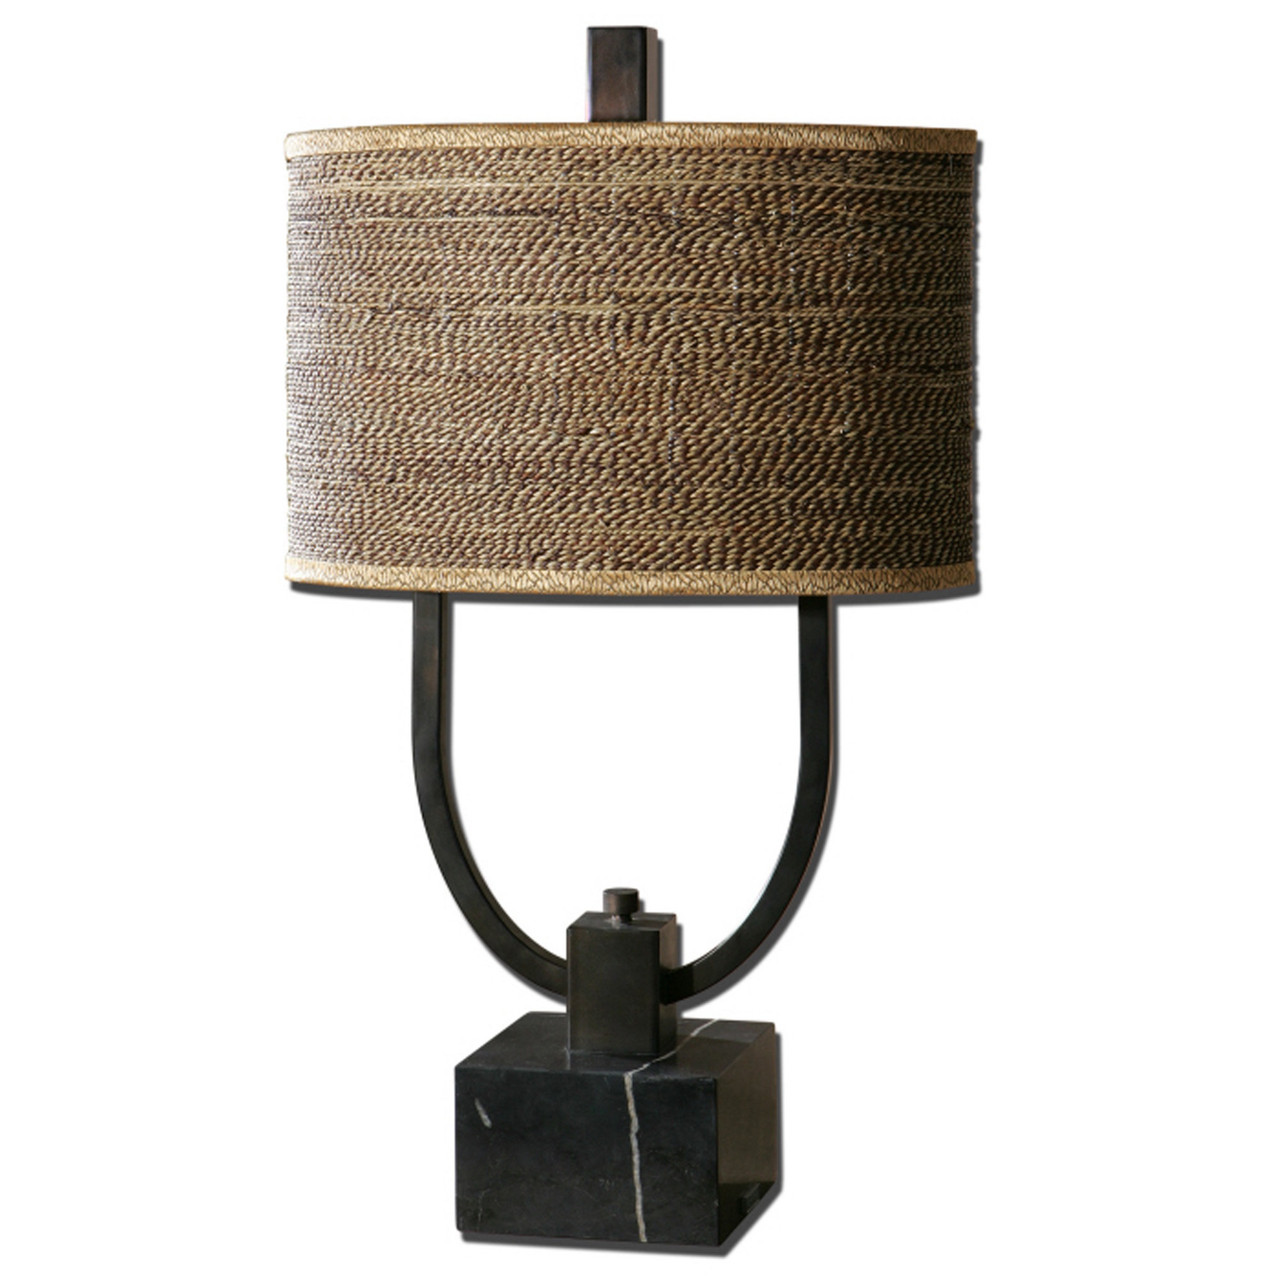 30 rustic bronze black marble woven rattan table lamp christmas 30 rustic bronze and black marble woven rattan table lamp 28266204 aloadofball Images